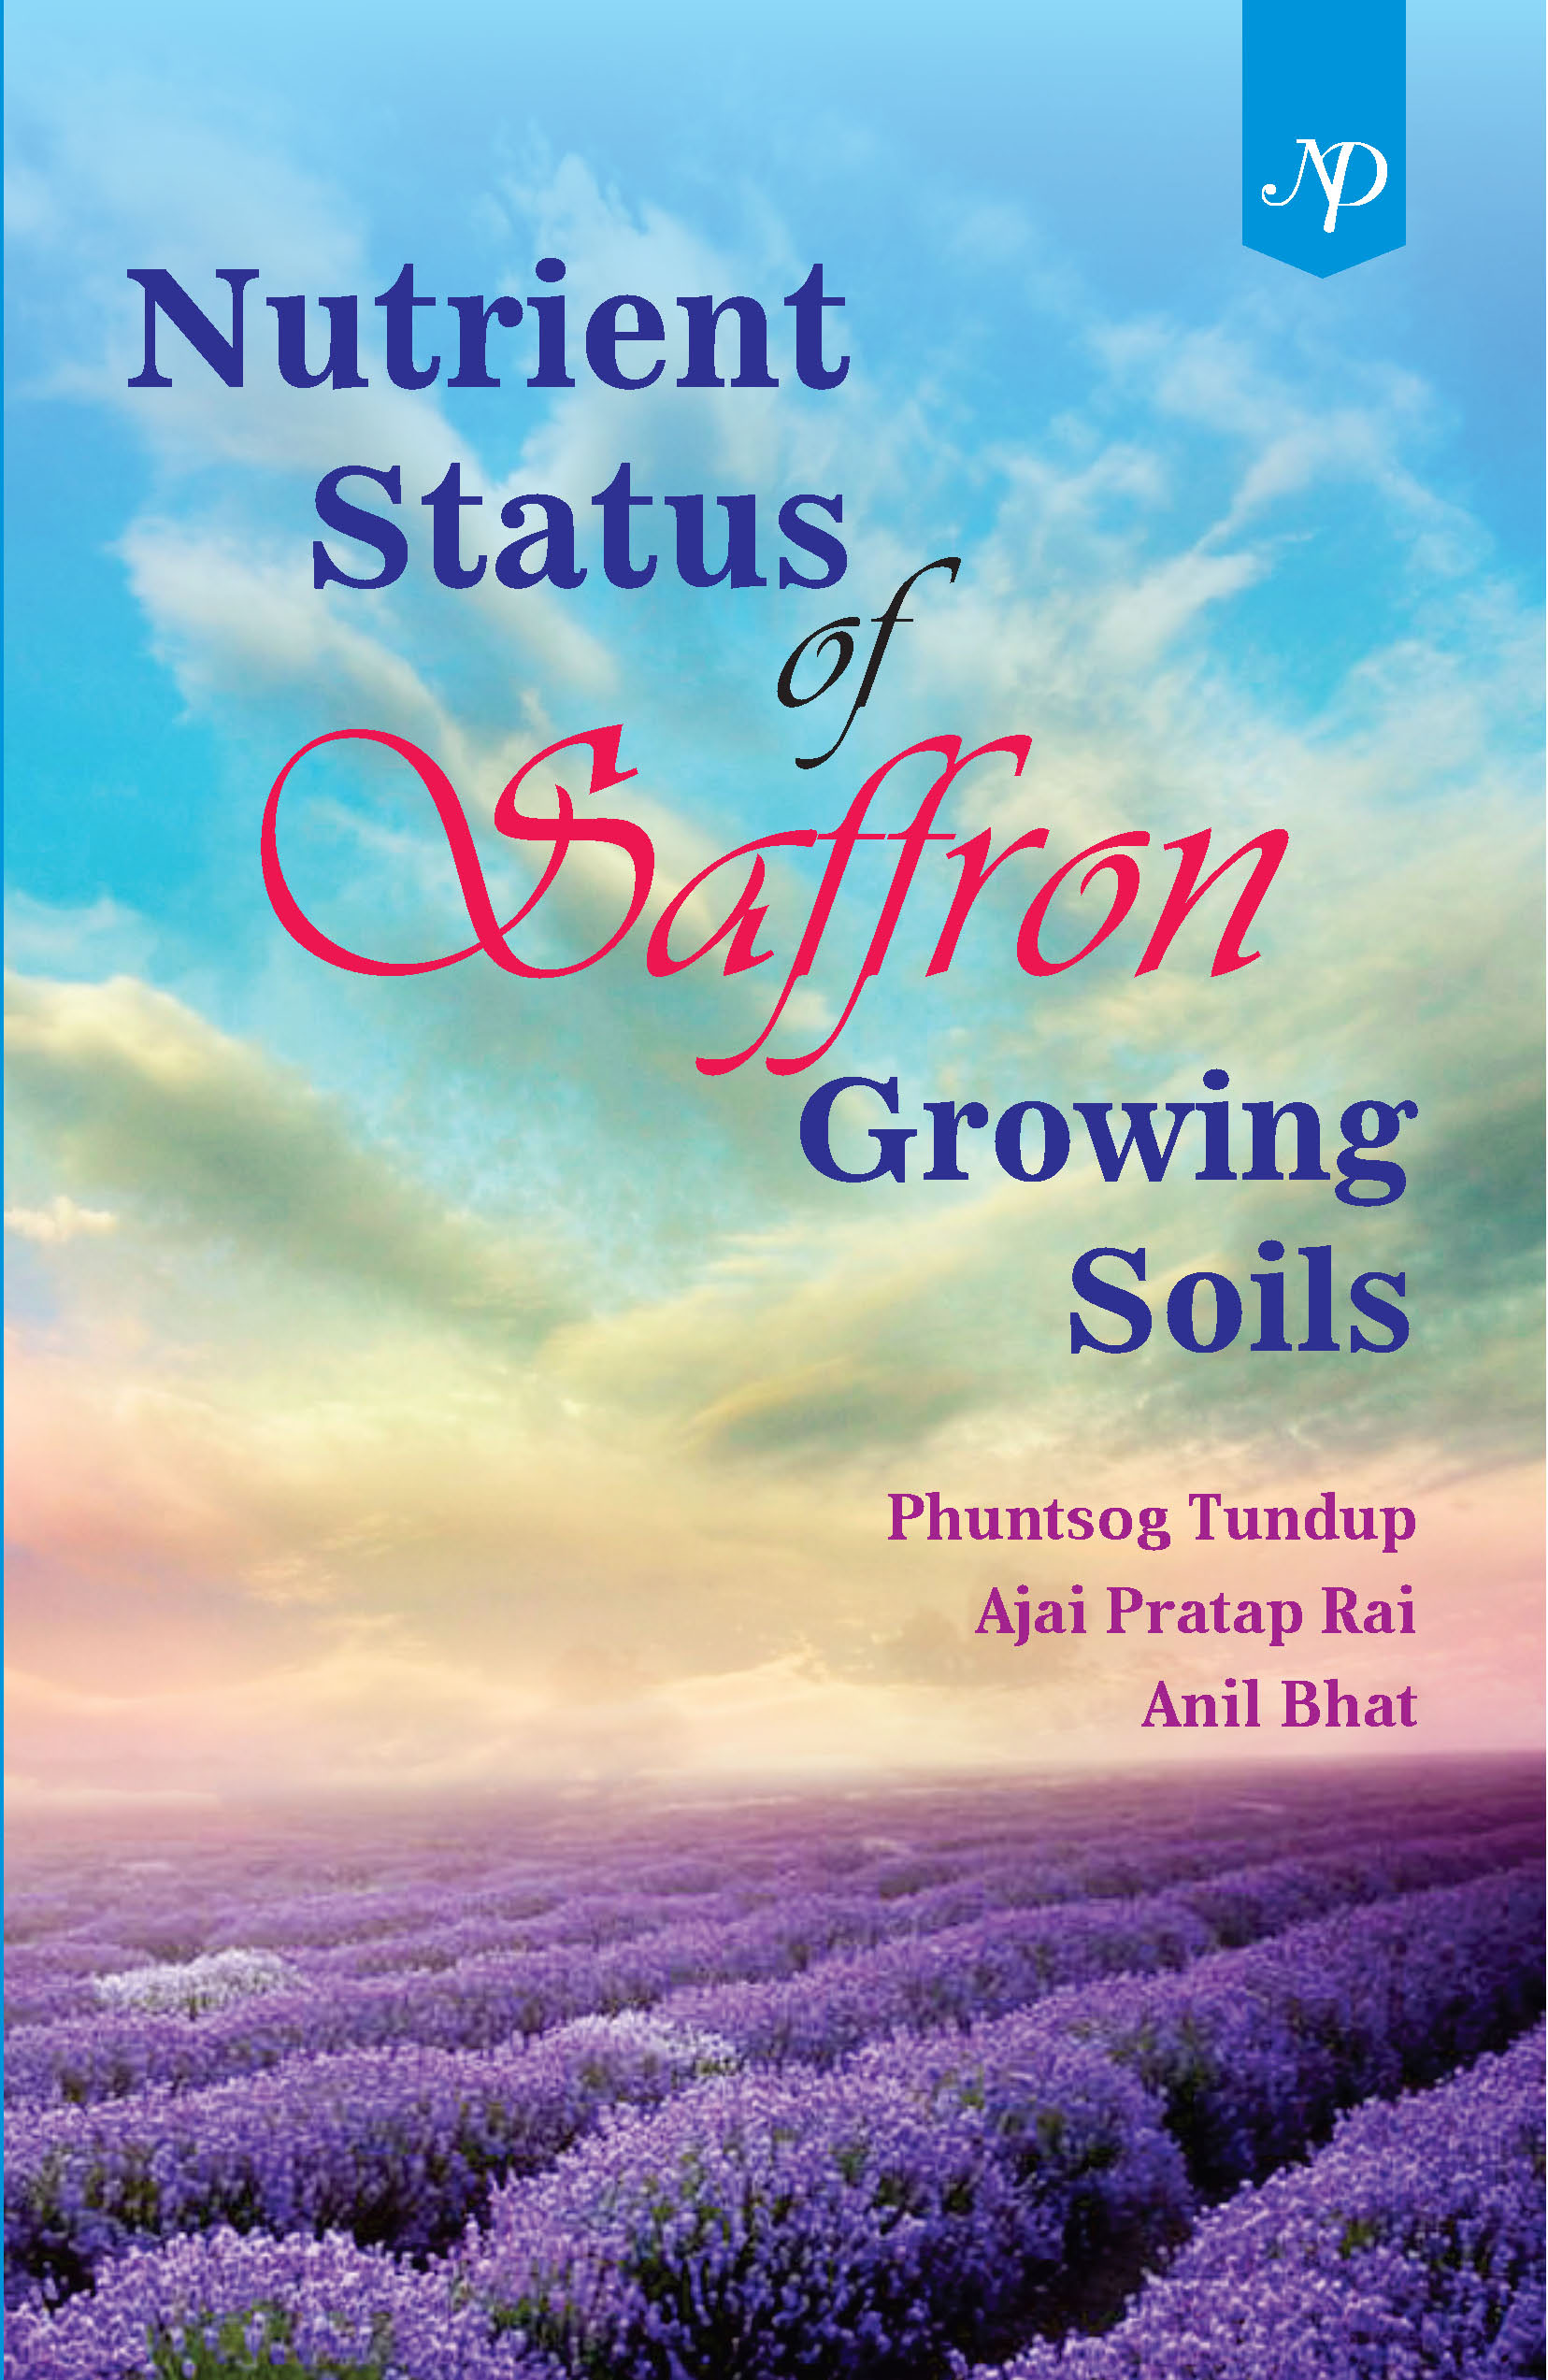 NUTRIENT STATUS OF SAFFRON GROWING SOILS